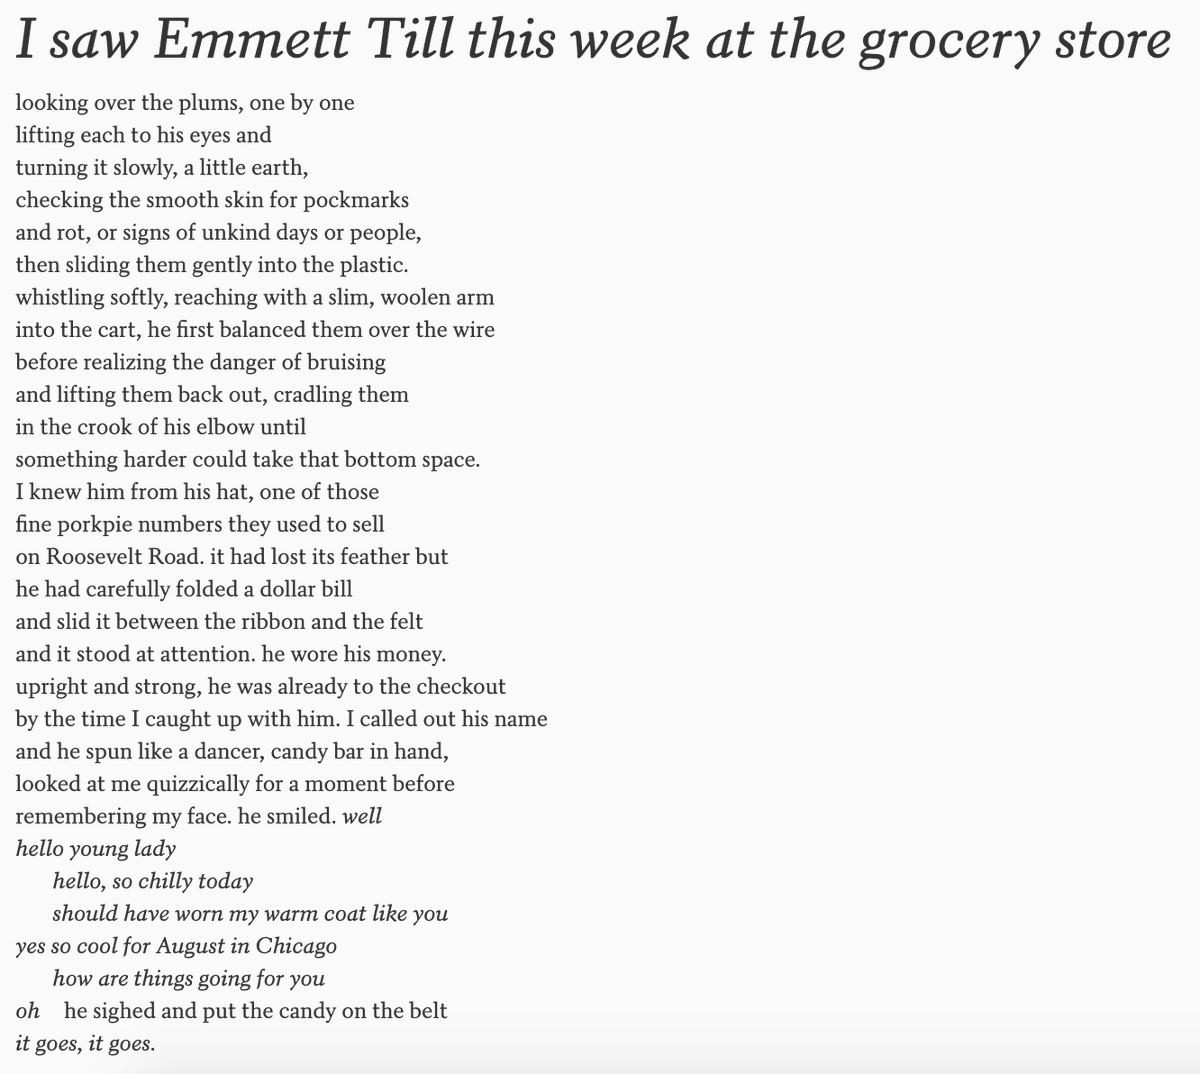 'I saw Emmett Till this week at the grocery store' by @eveewing: poets.org/poem/i-saw-emm…